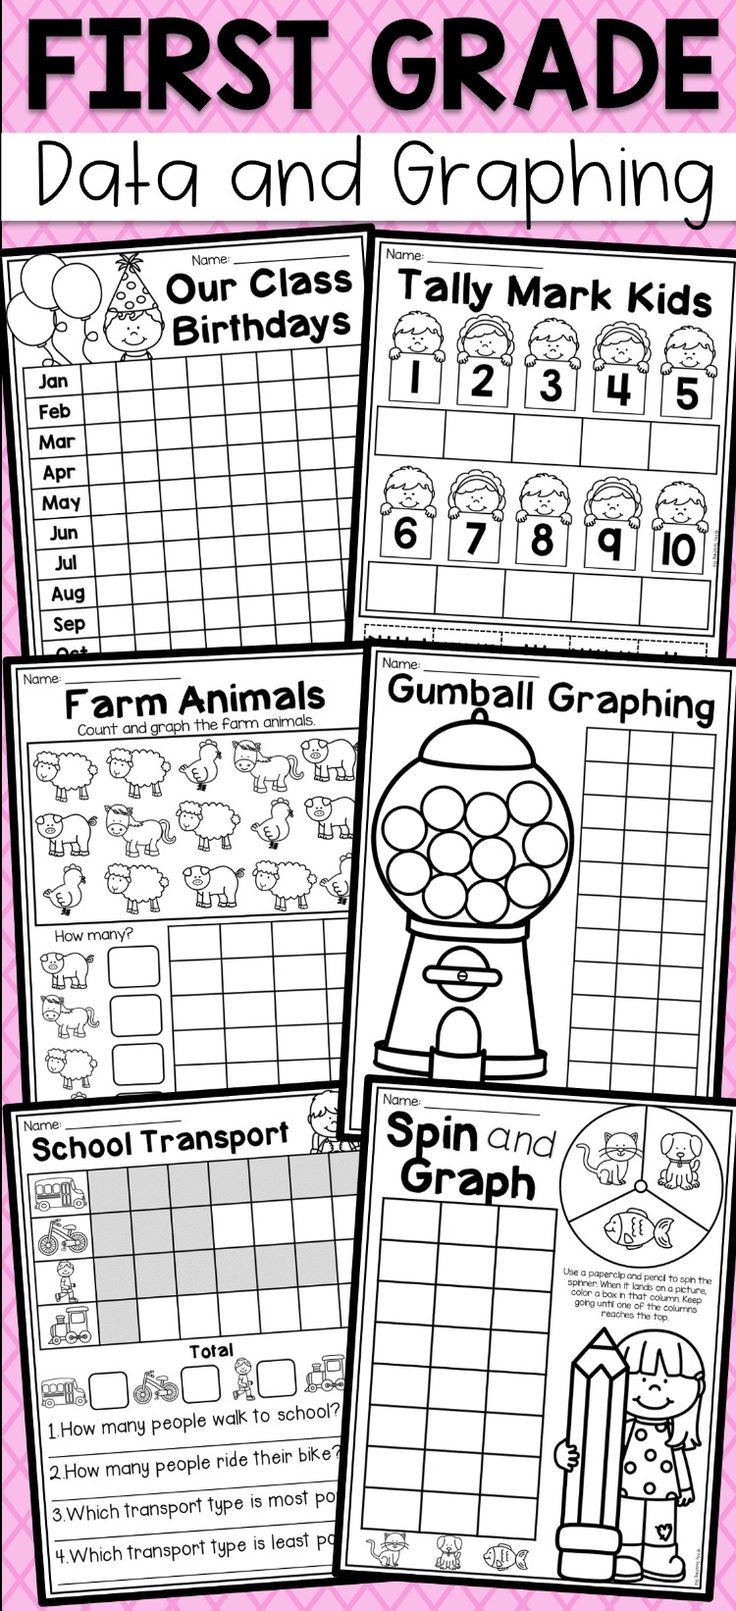 First Grade Data and Graphing Worksheets Distance Learning